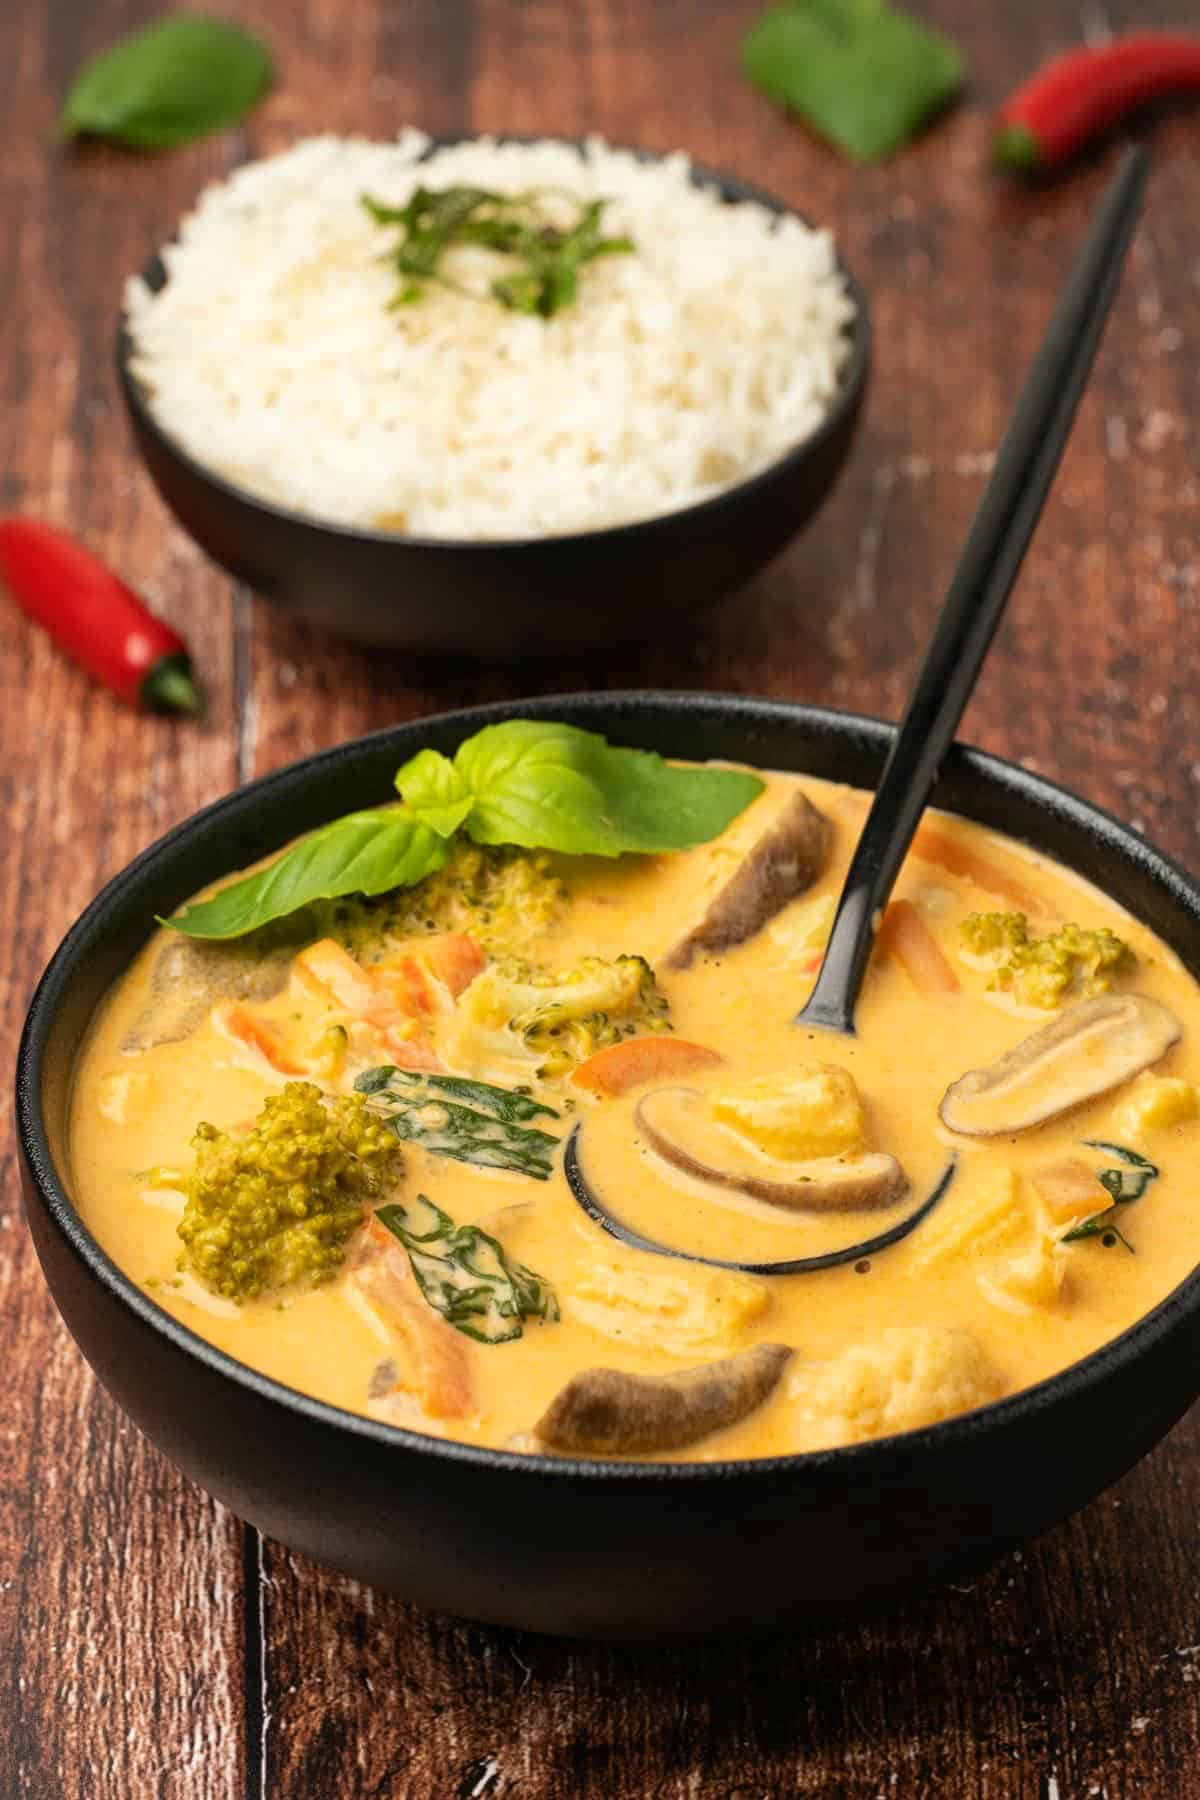 Thai red curry in a black bowl with a spoon.